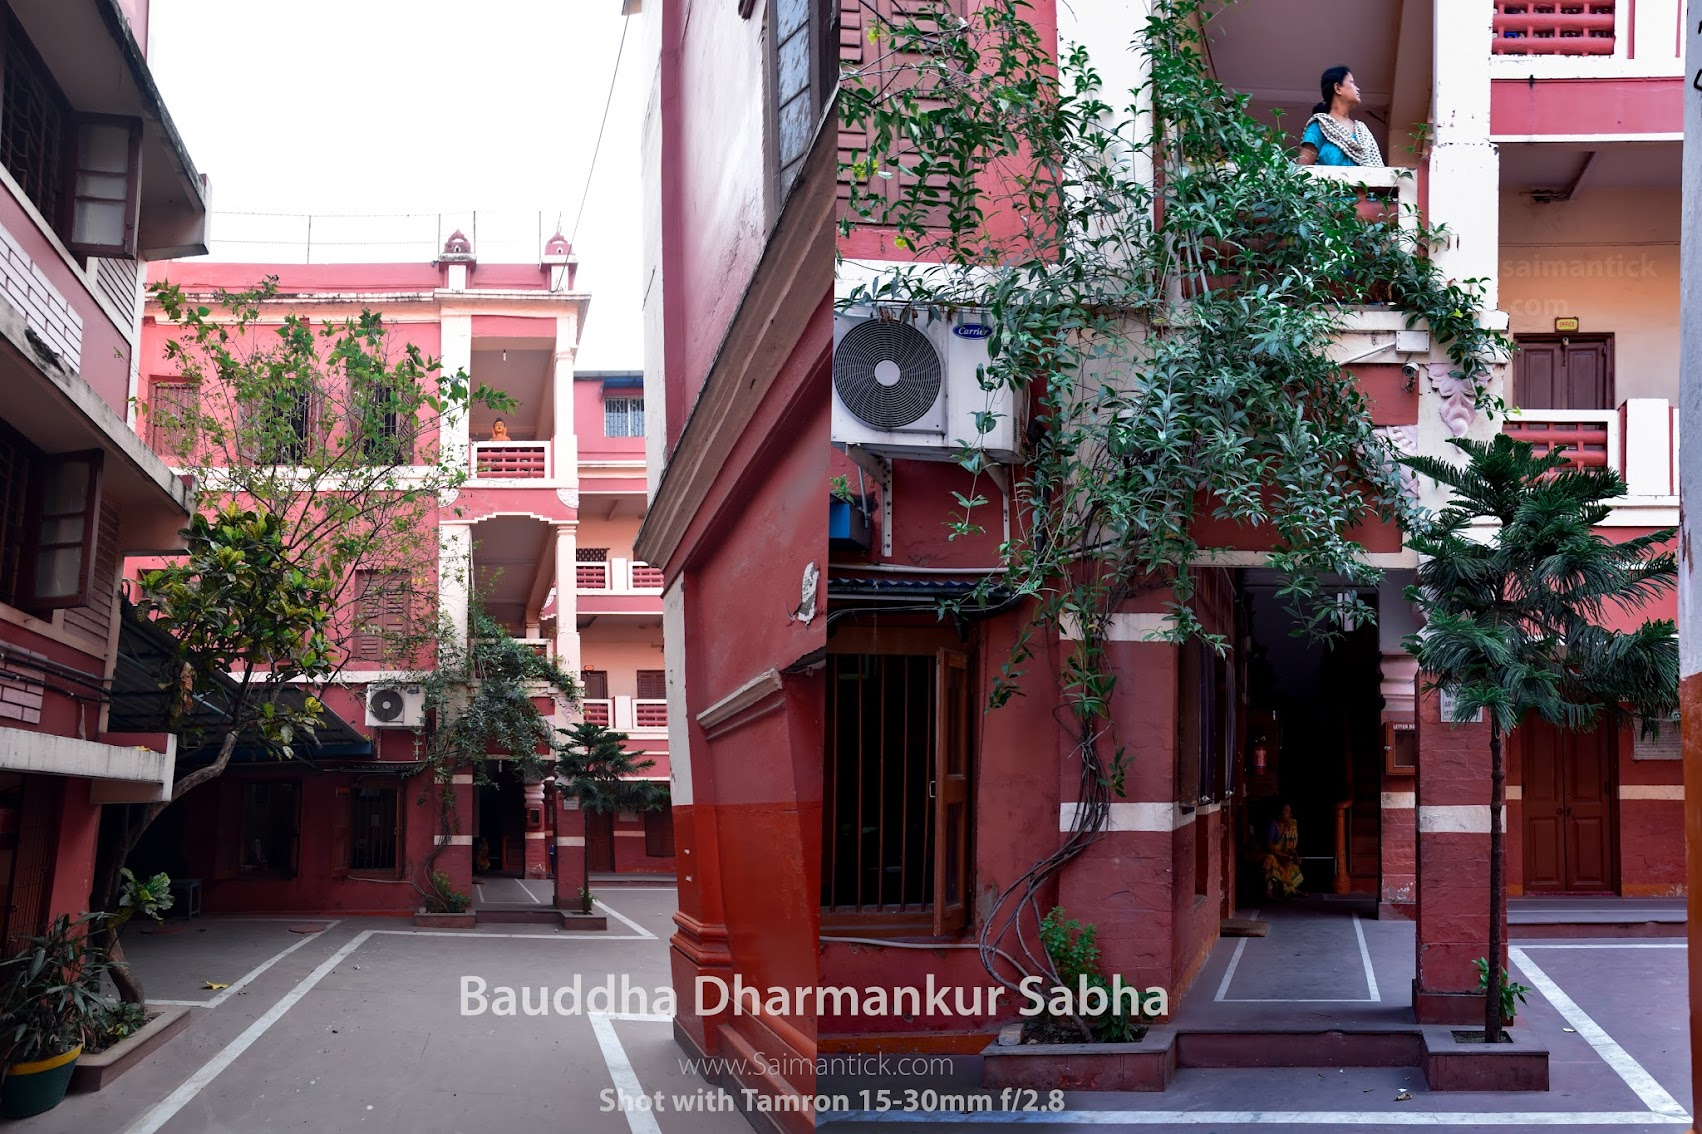 Buddhism, budhism, Kolkata, bow barracks, bow bazaar, maidan, Bauddha Dharmankur Sabha, Bodh Gaya, Bengal Buddhist Association